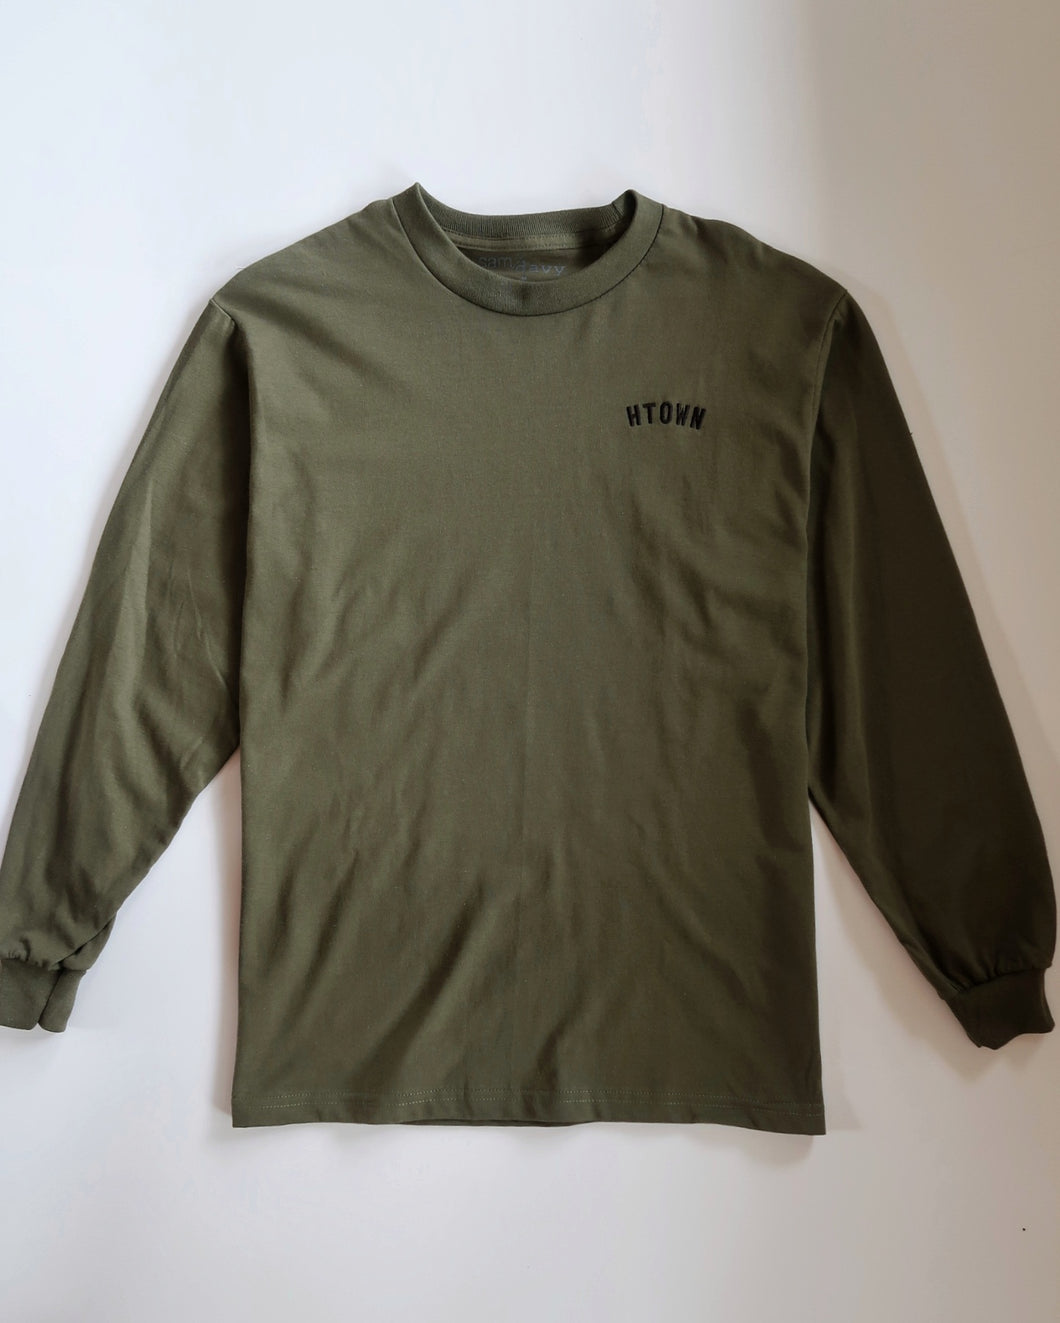 HTOWN Embroidered Longsleeve Tee (Military Green/Black)